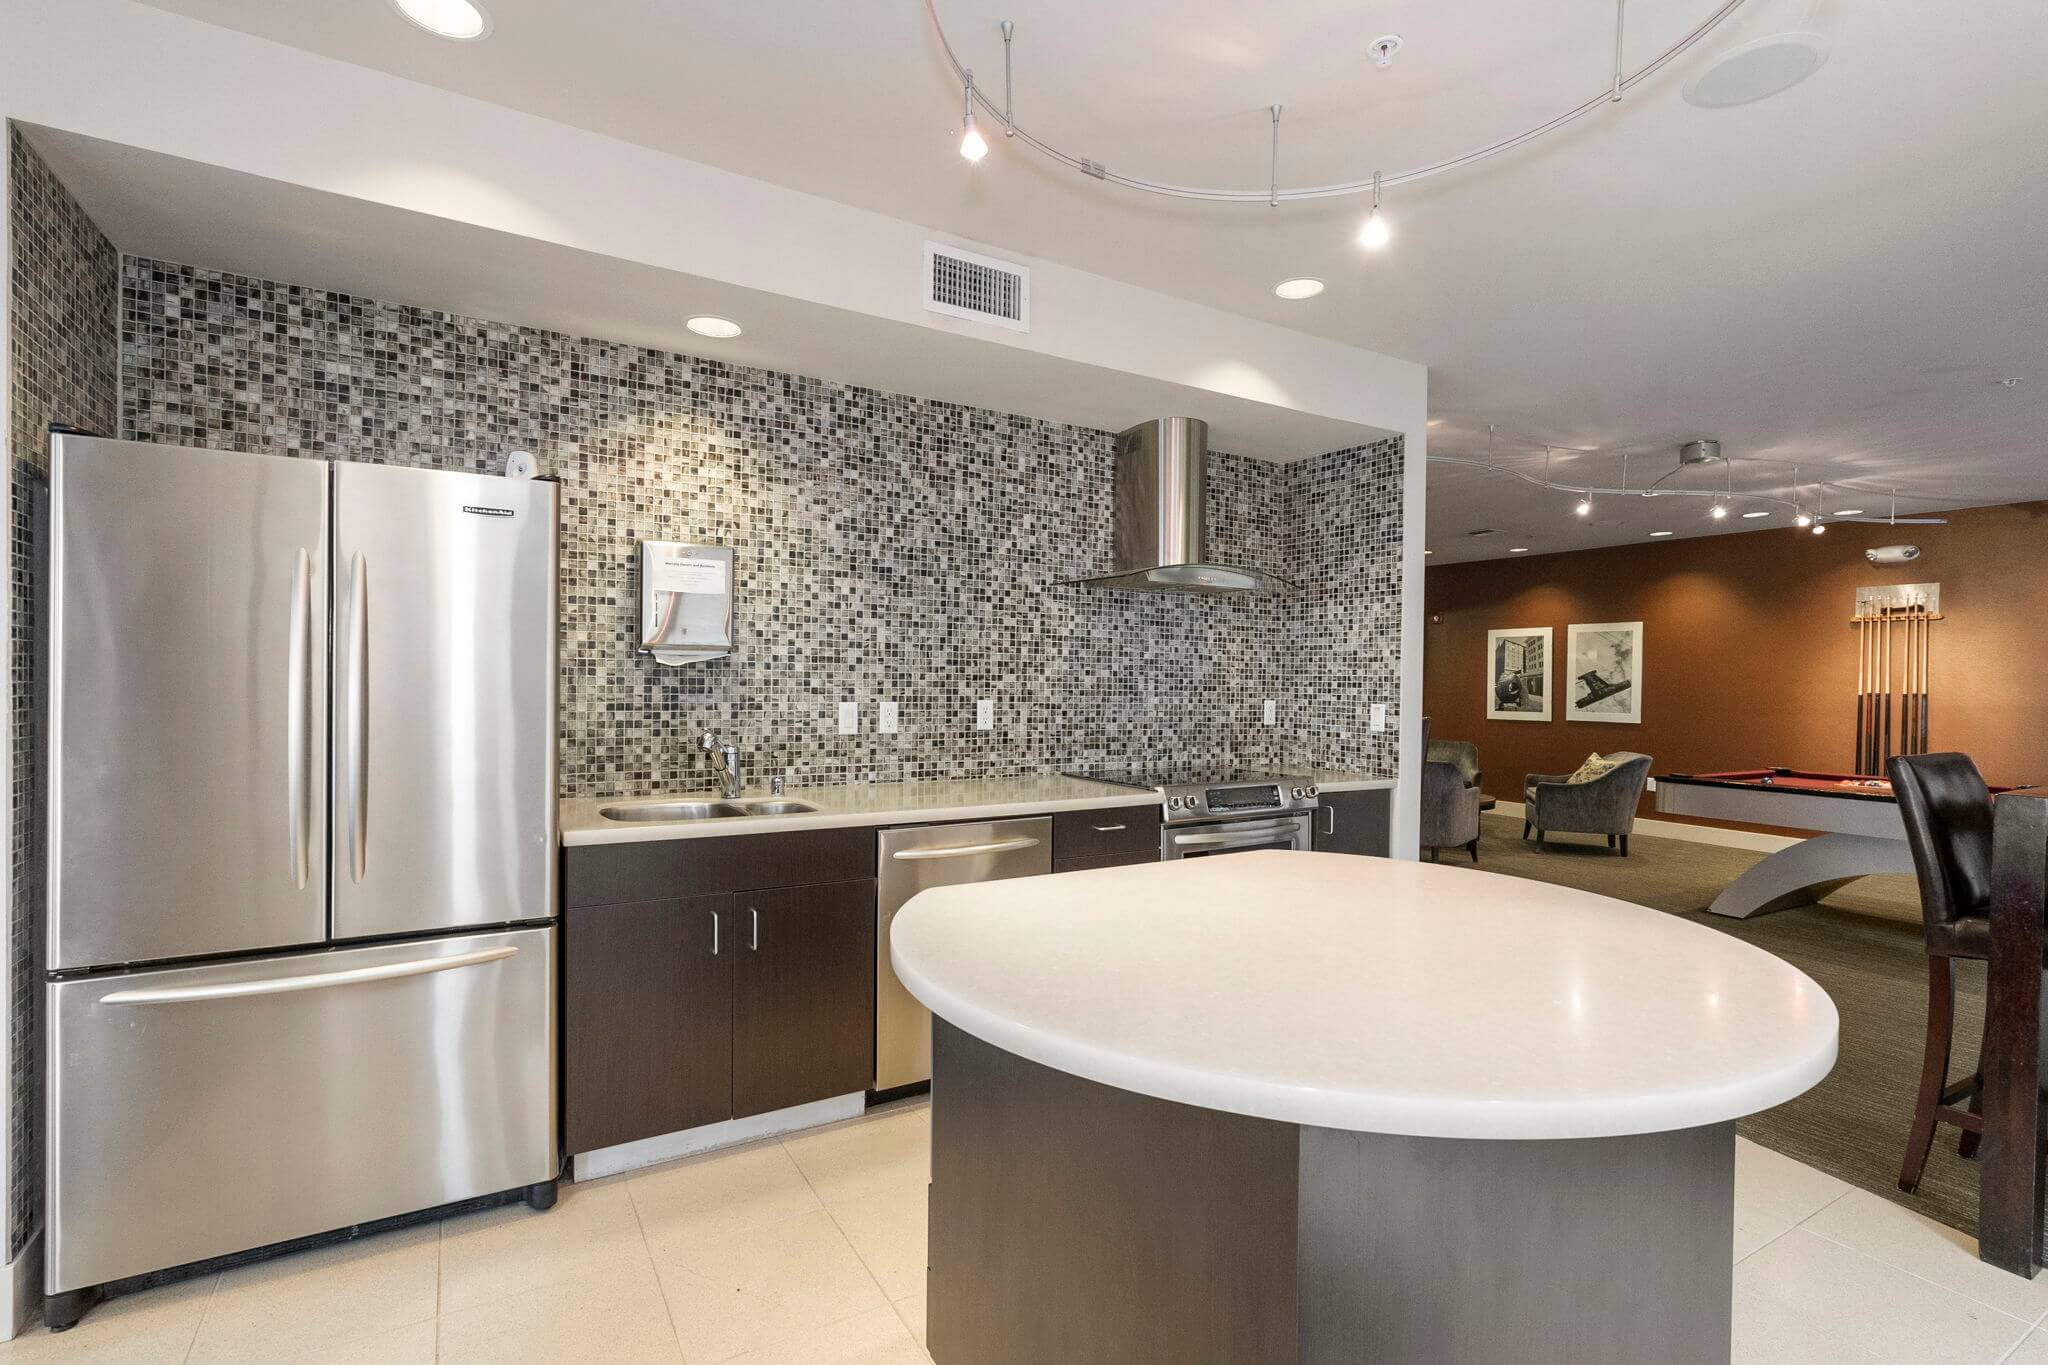 Club room features a full kitchen, ideal for entertaining